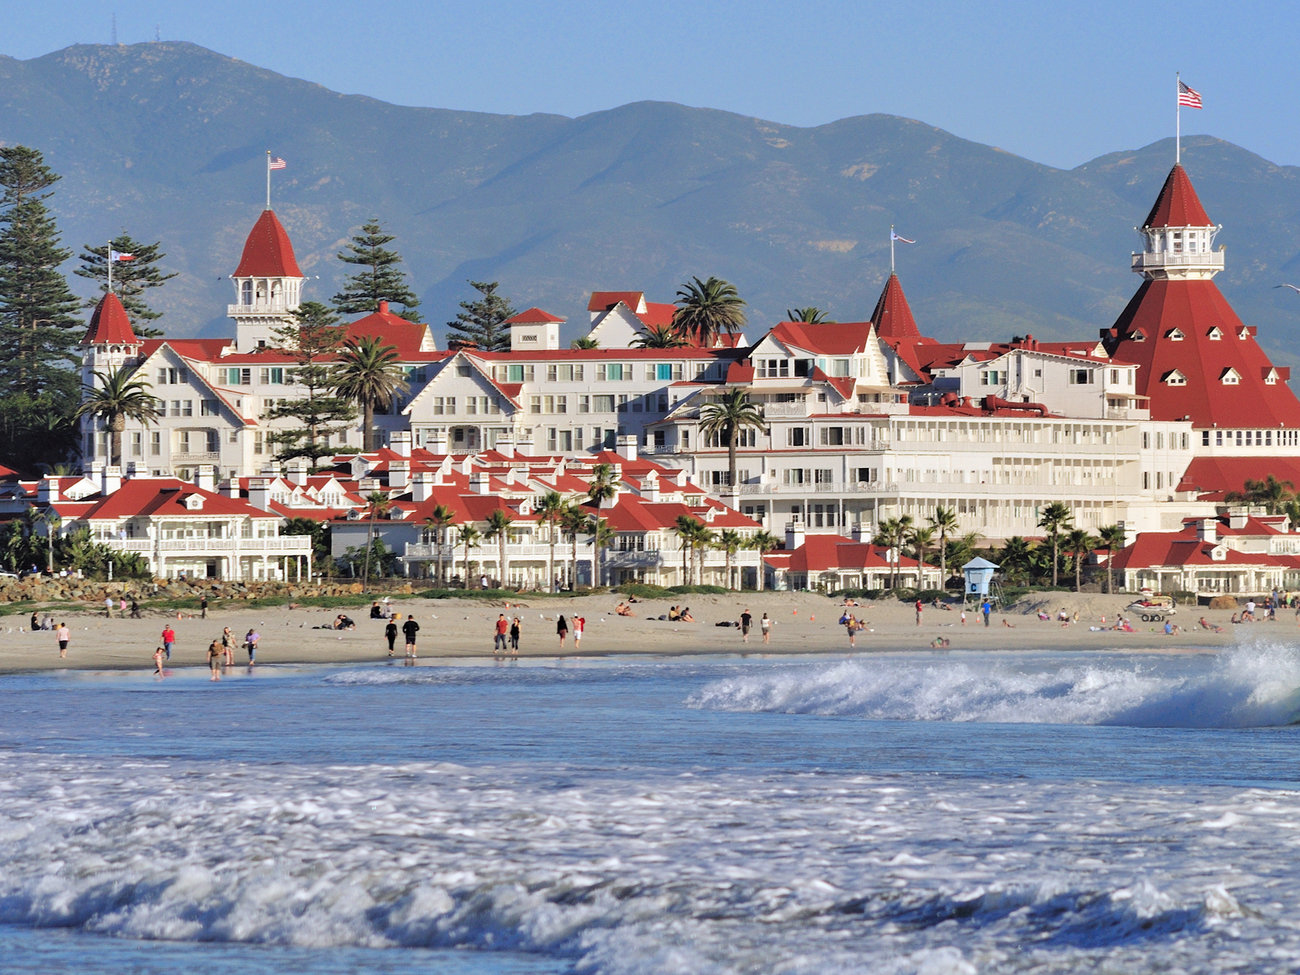 Hotel del Coronado | Travel + Leisure